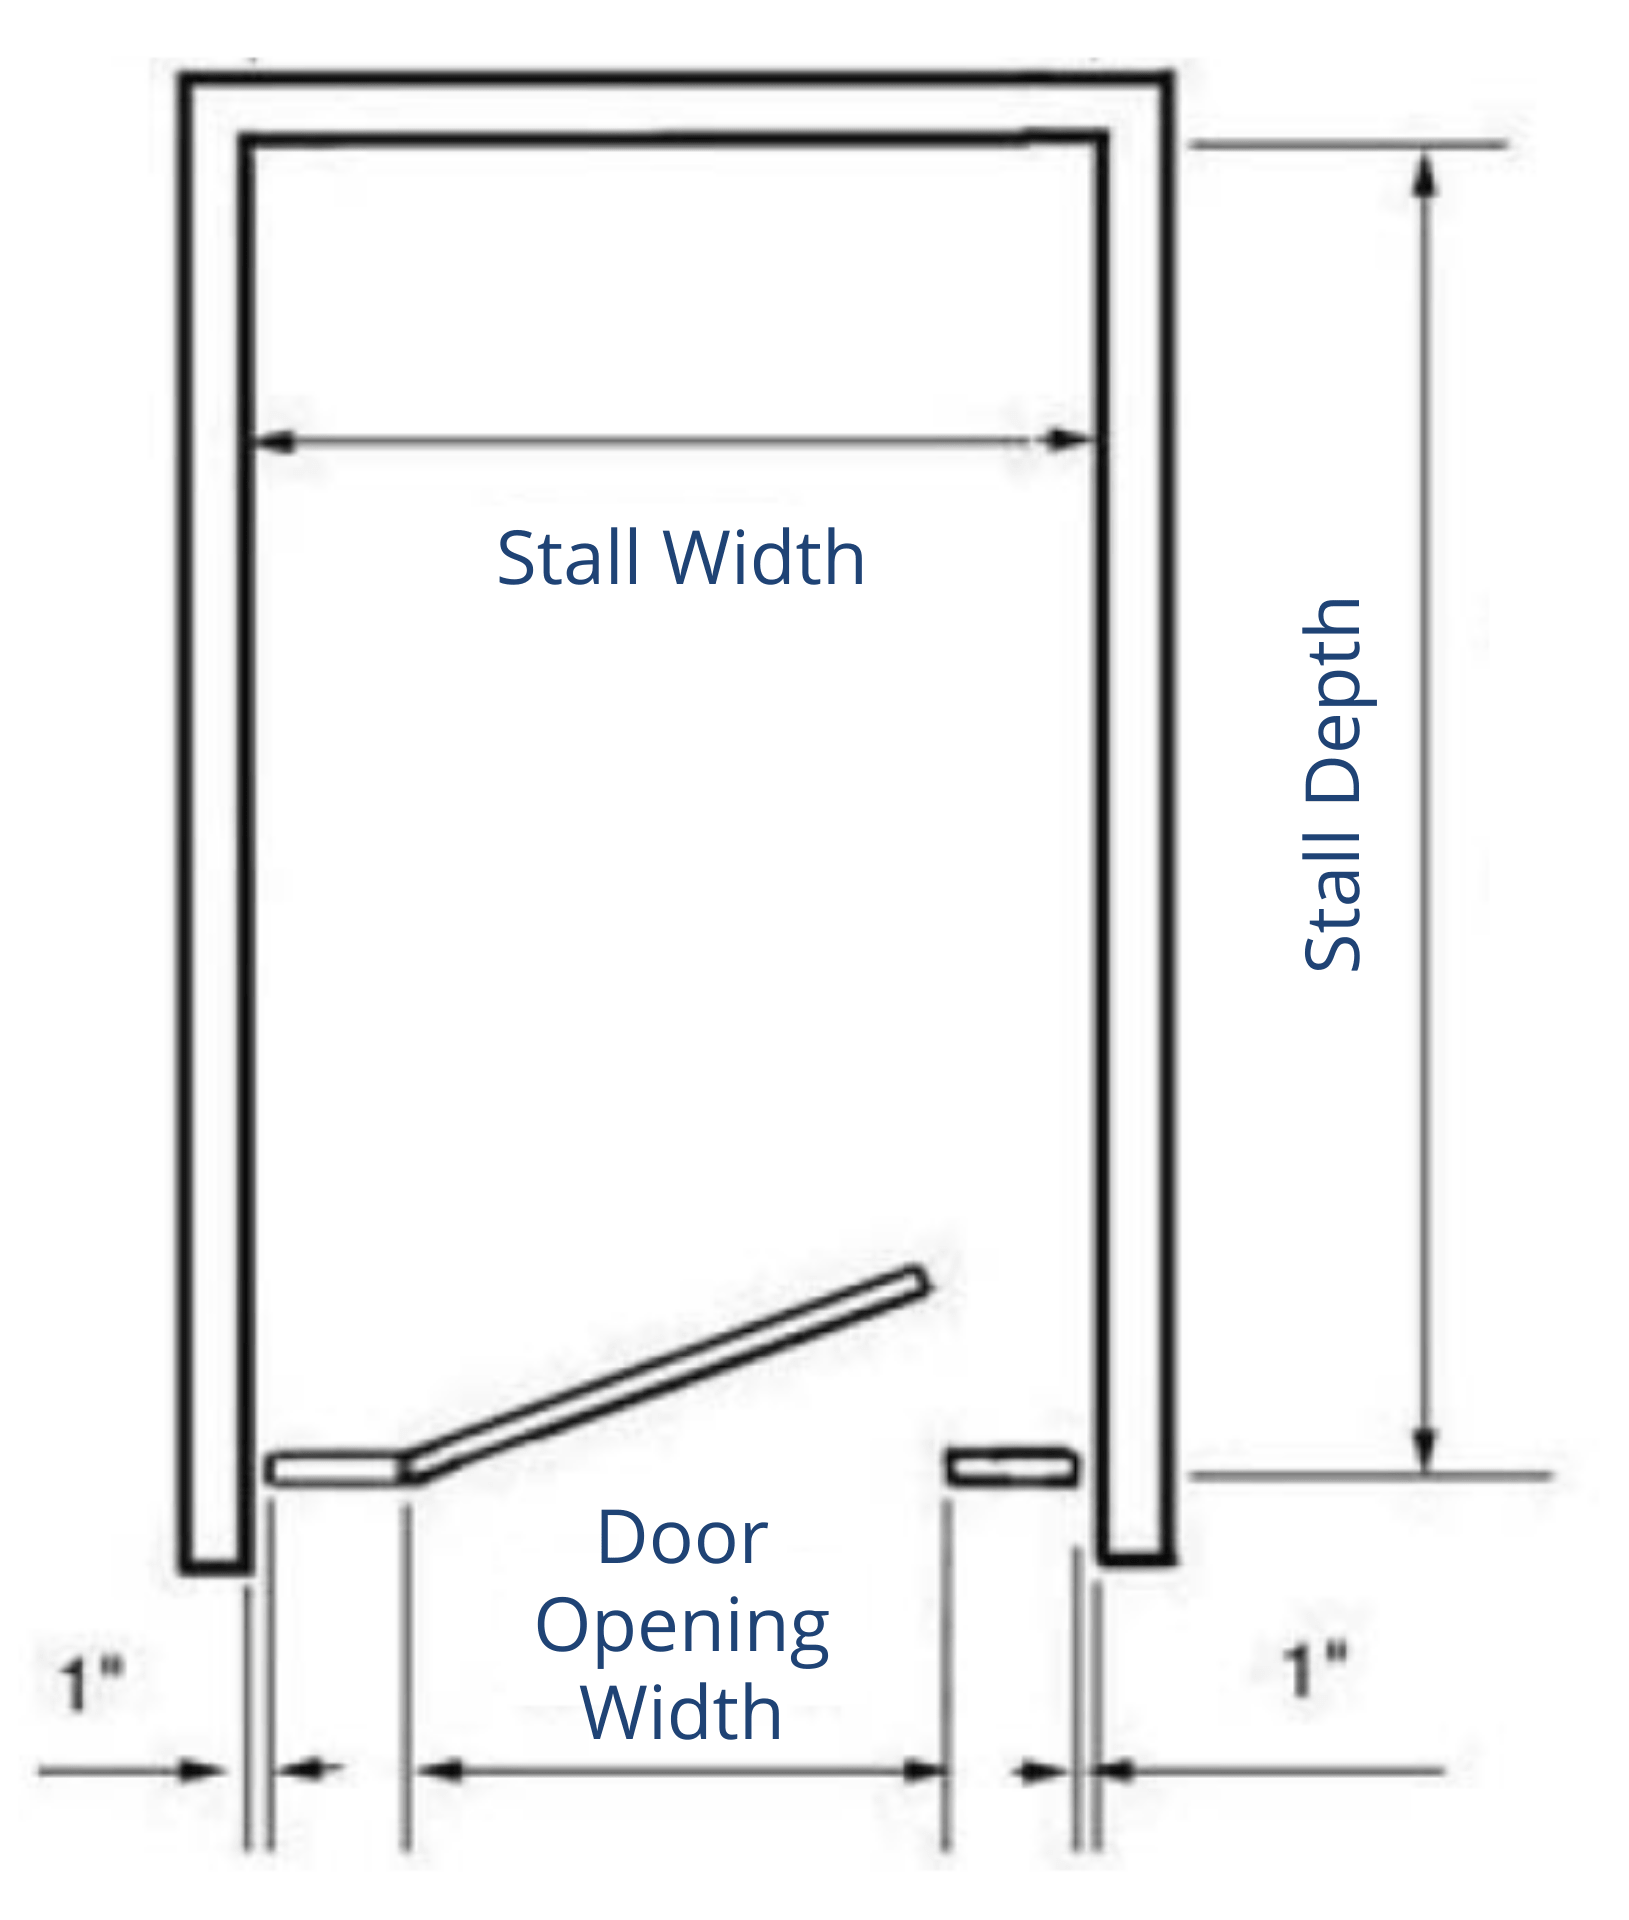 1 Stall between 2 walls Diagram